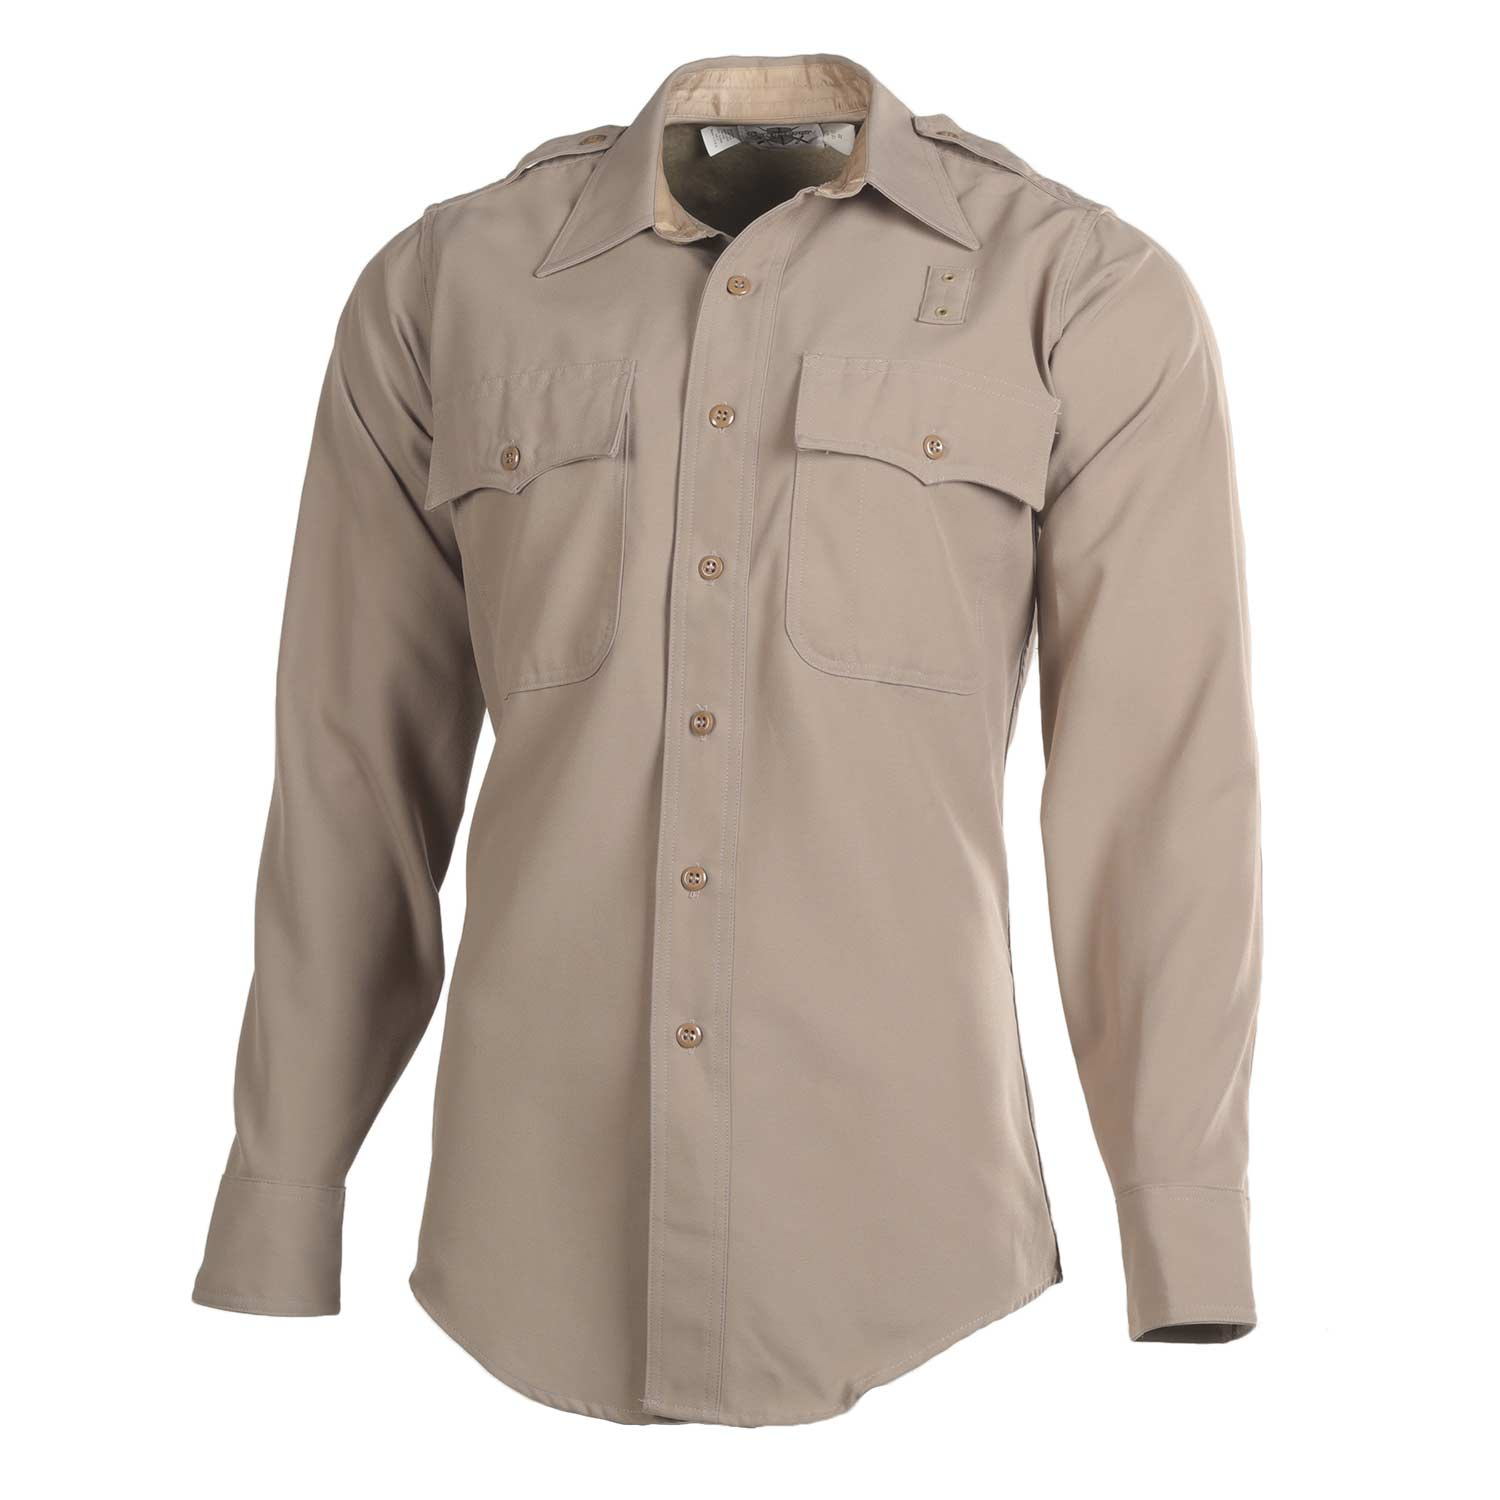 Leventhal Conqueror CHP Long Sleeve Uniform Shirt